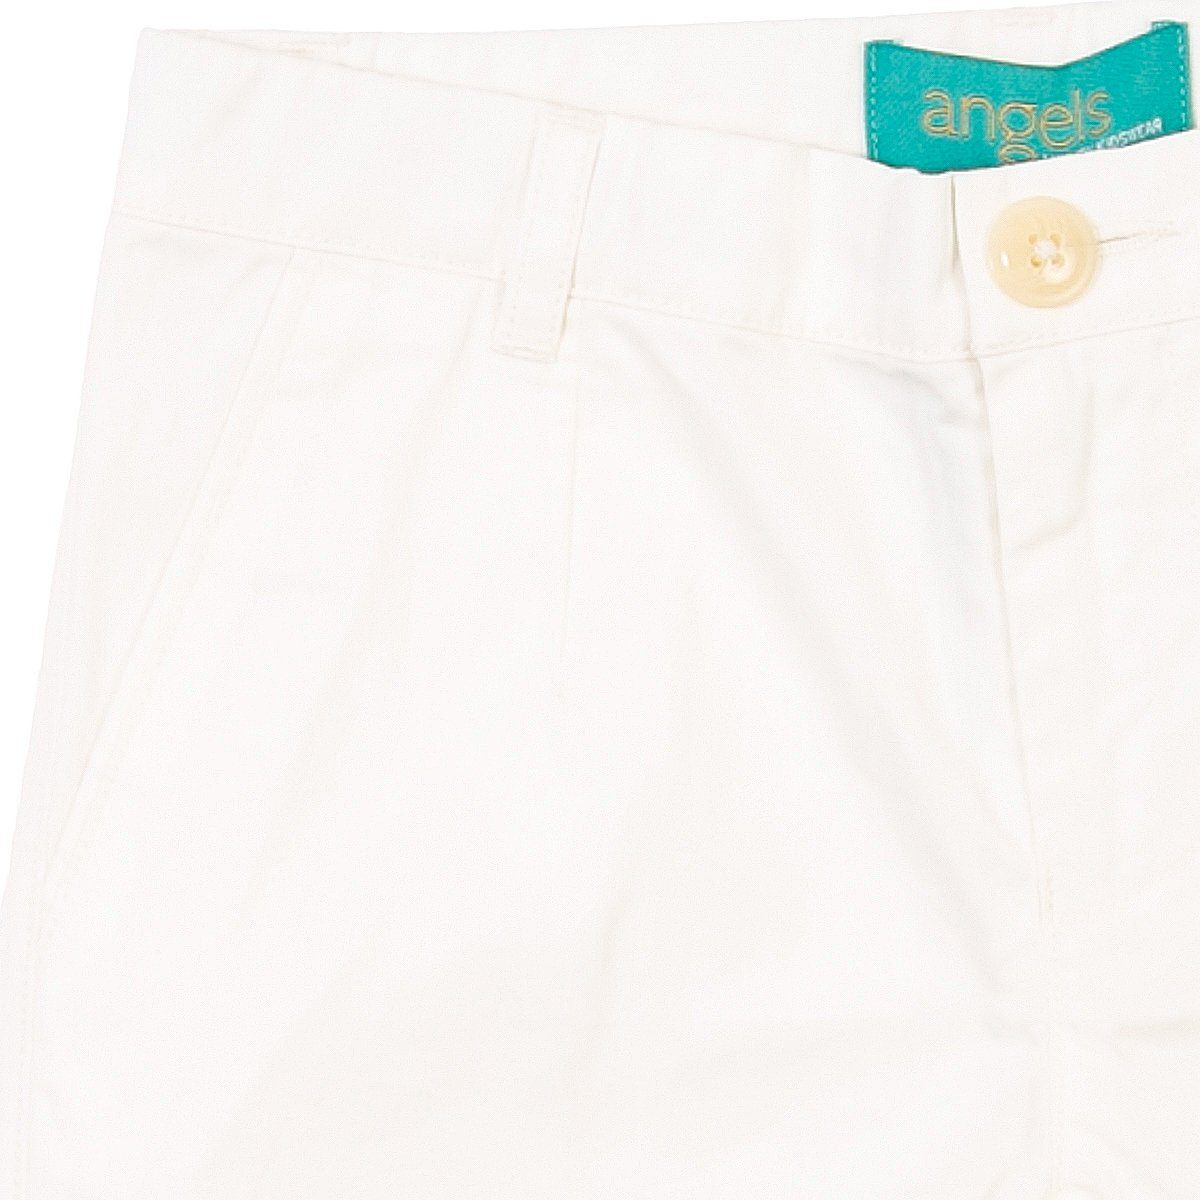 Angels Luxury Kidswear, Chino Shorts For Boys, White